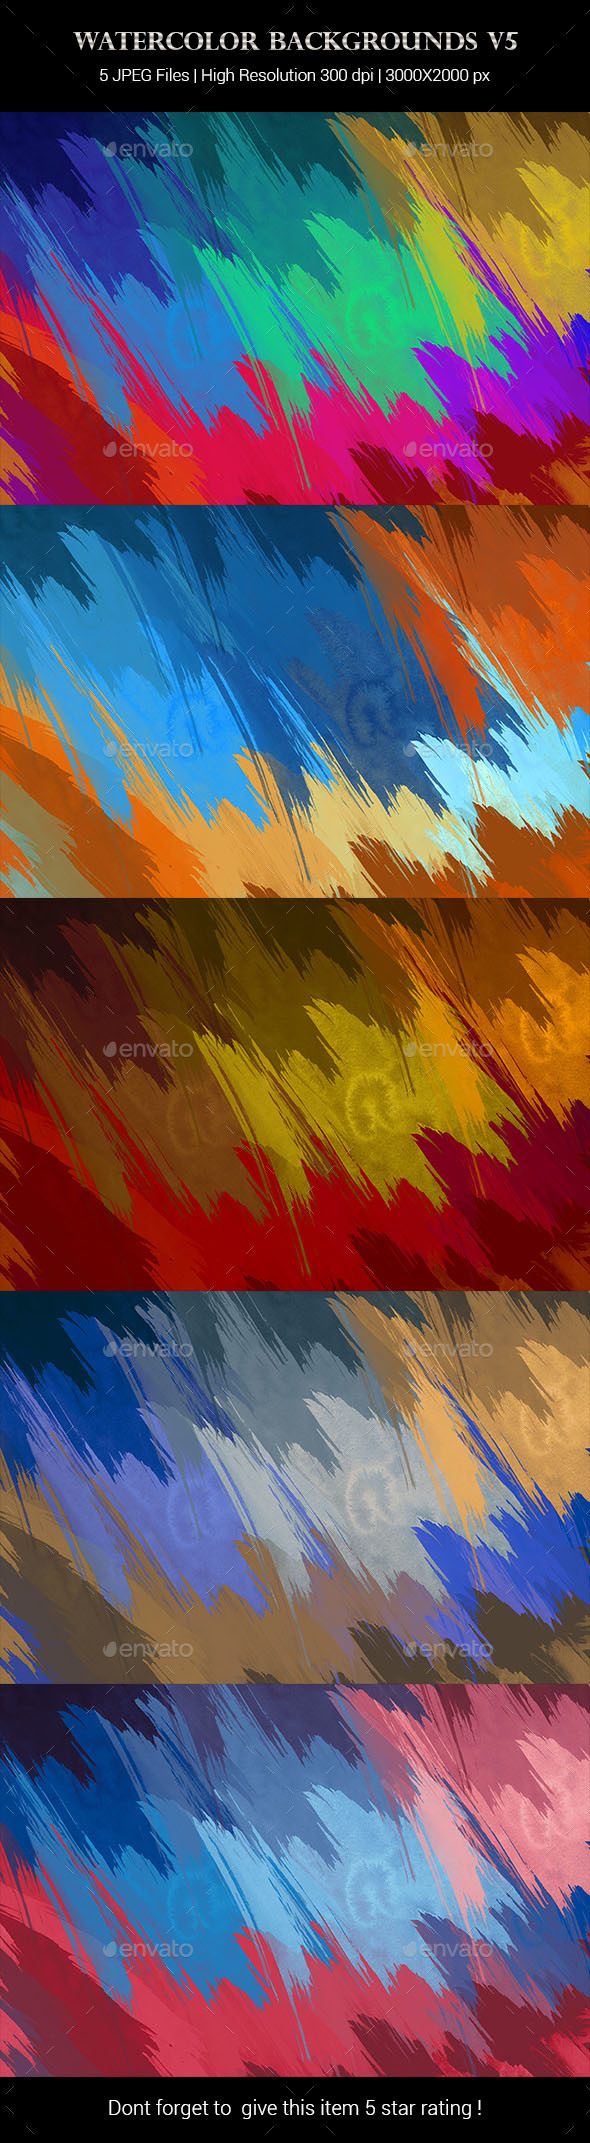 Watercolor Backgrounds v5 - Backgrounds Graphics